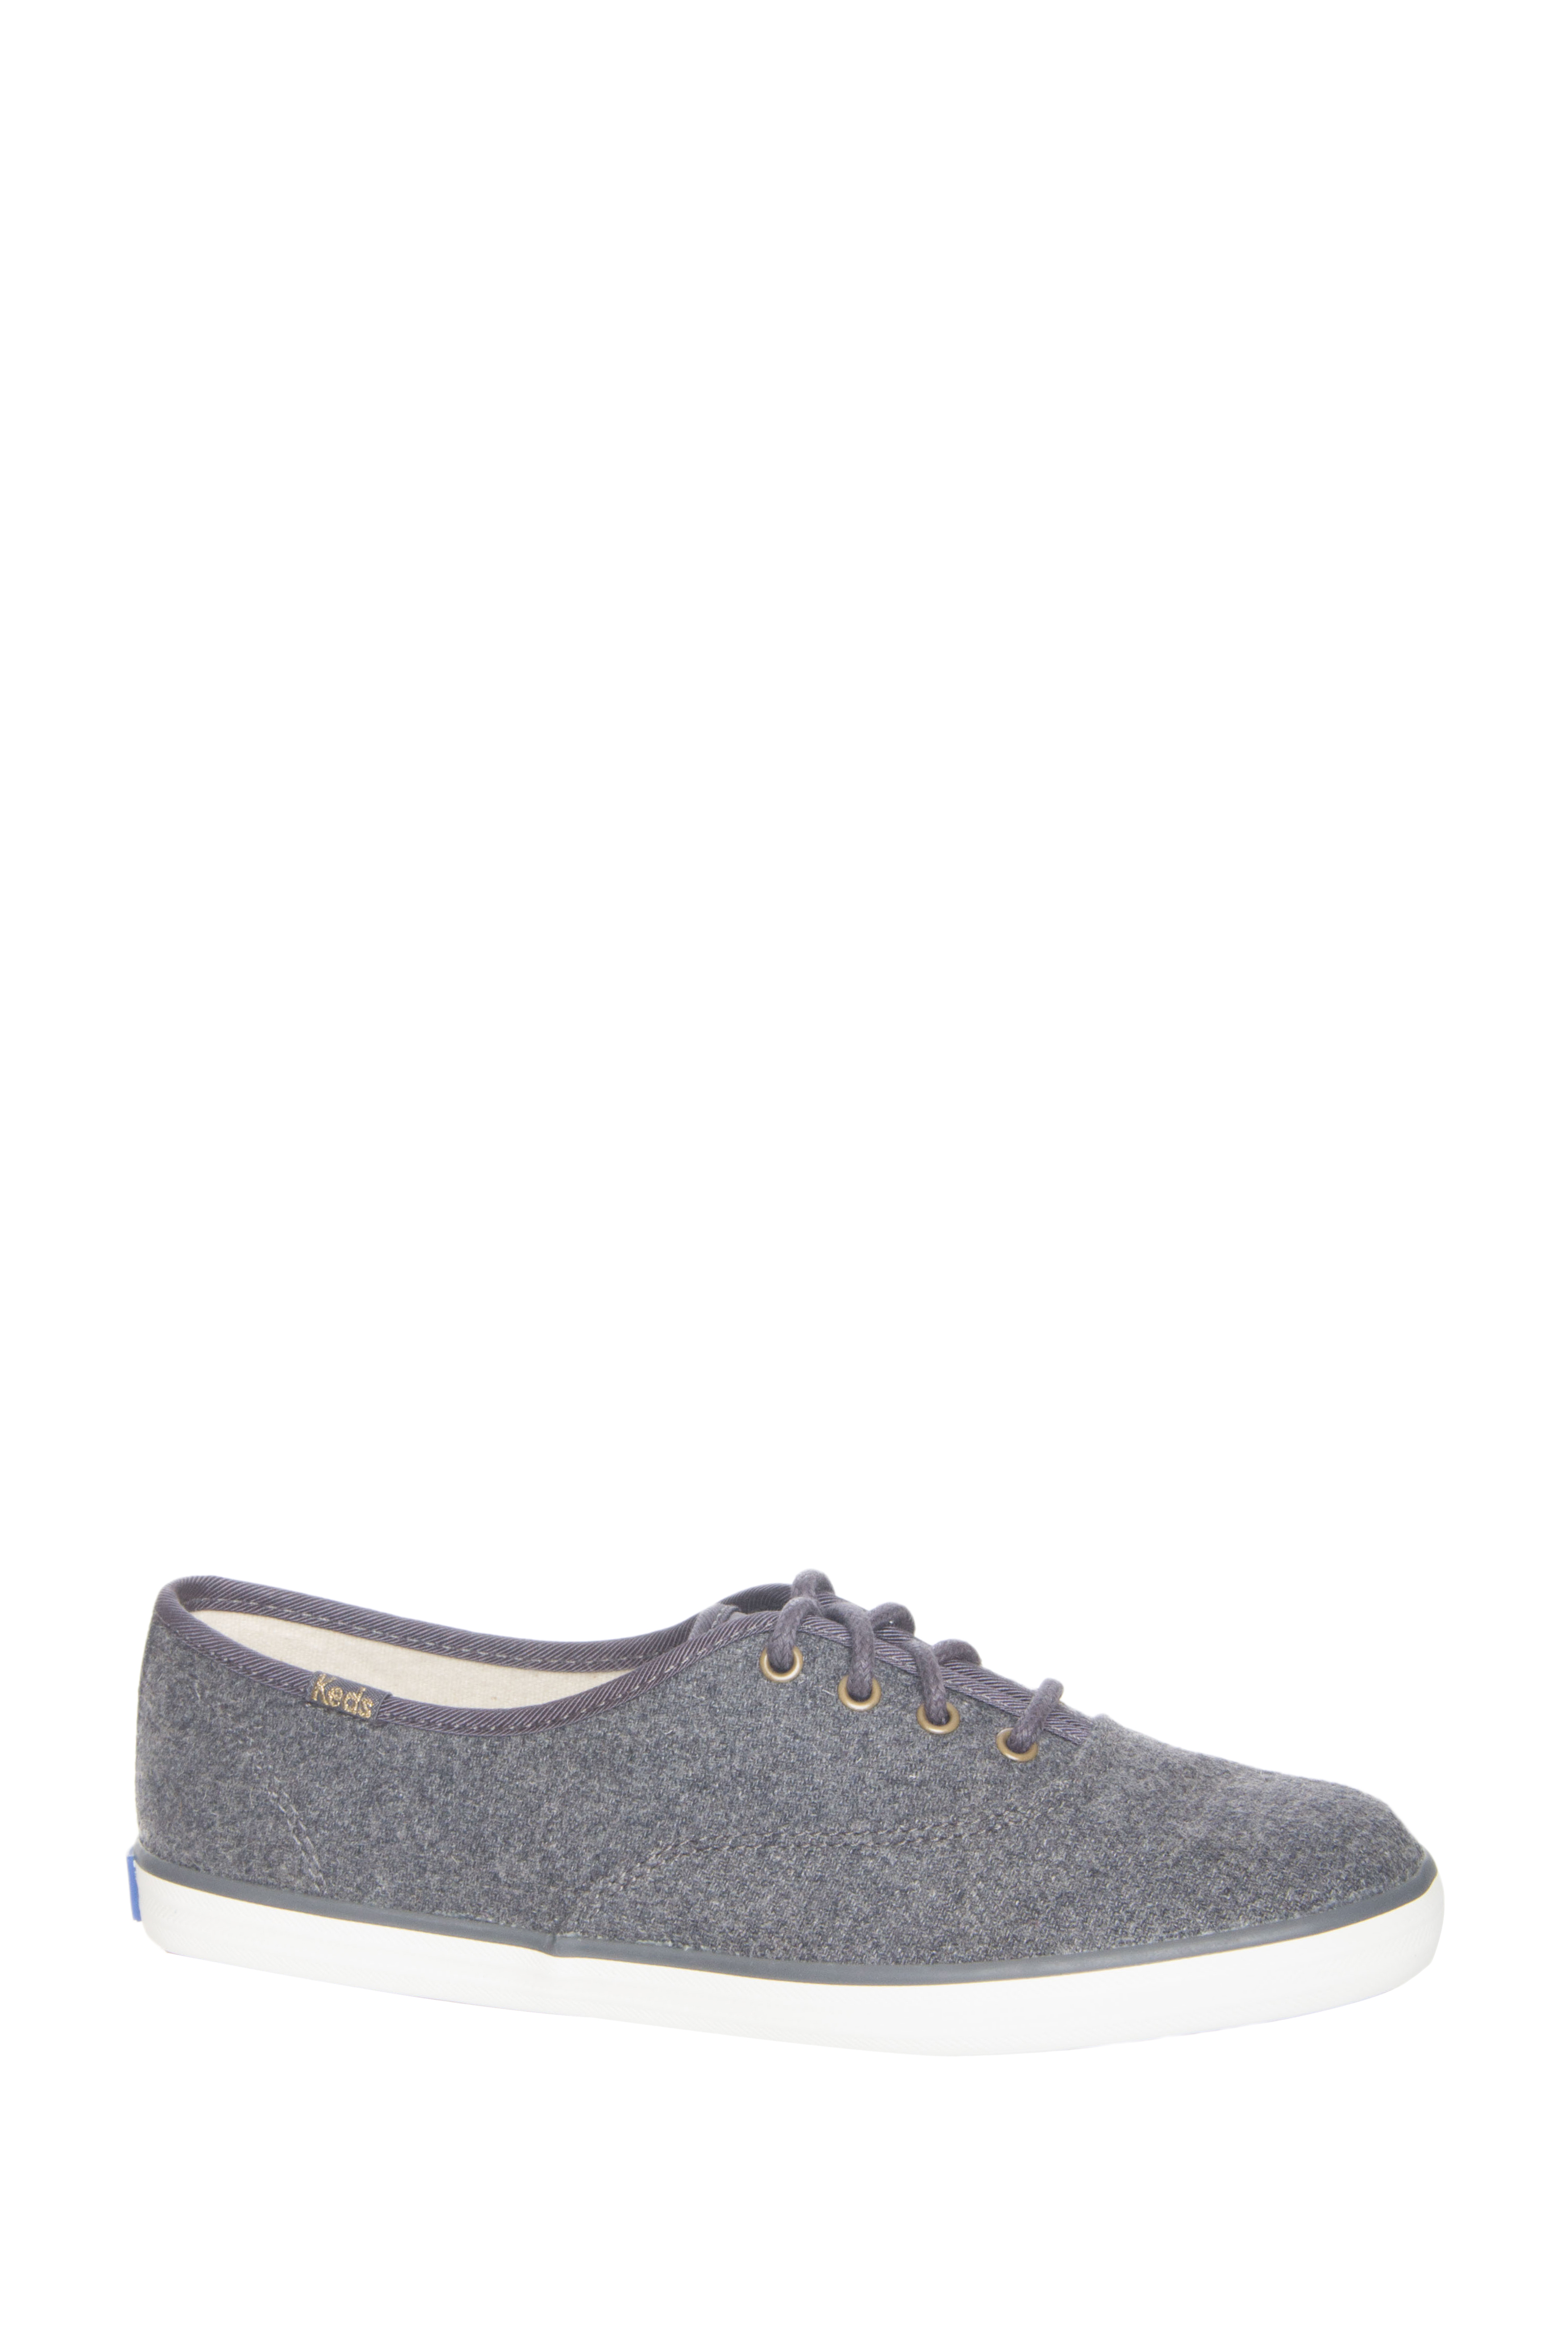 Keds Champion Wool Low Top Sneakers - Charcoal